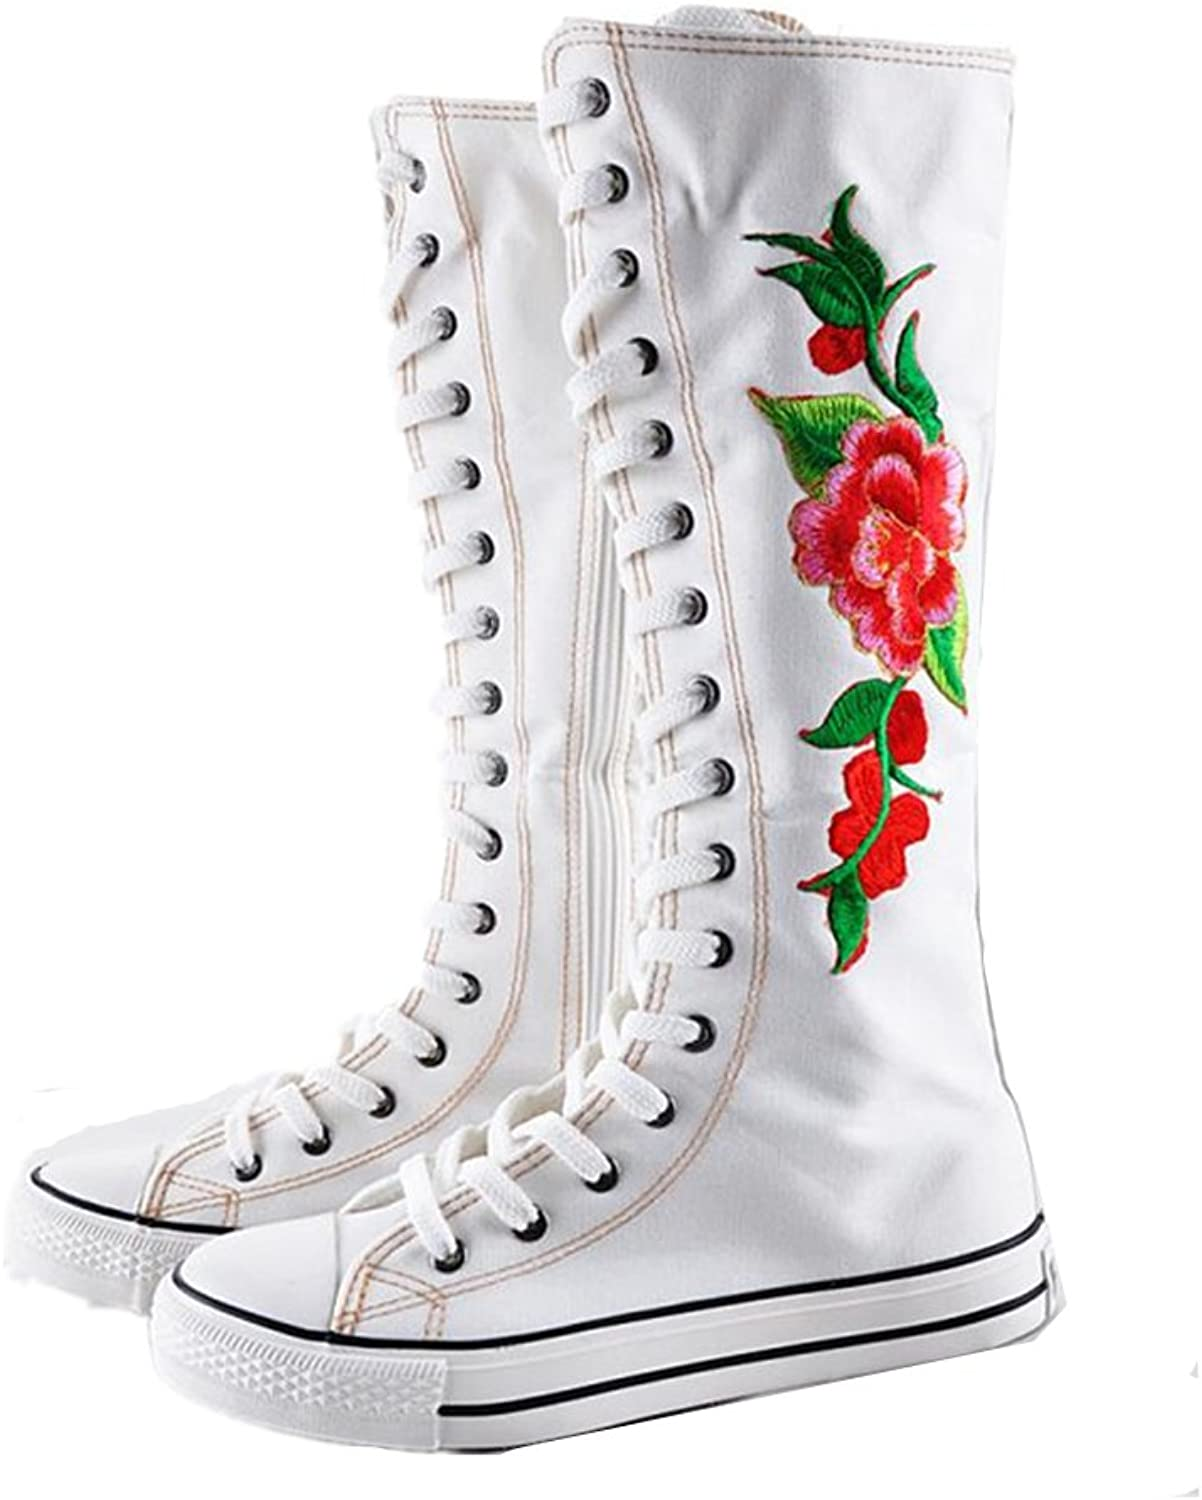 Xiaoyang Floral Embroidered Women's Dance Sneakers Punk Knee High Lace Ups Canvas Boots